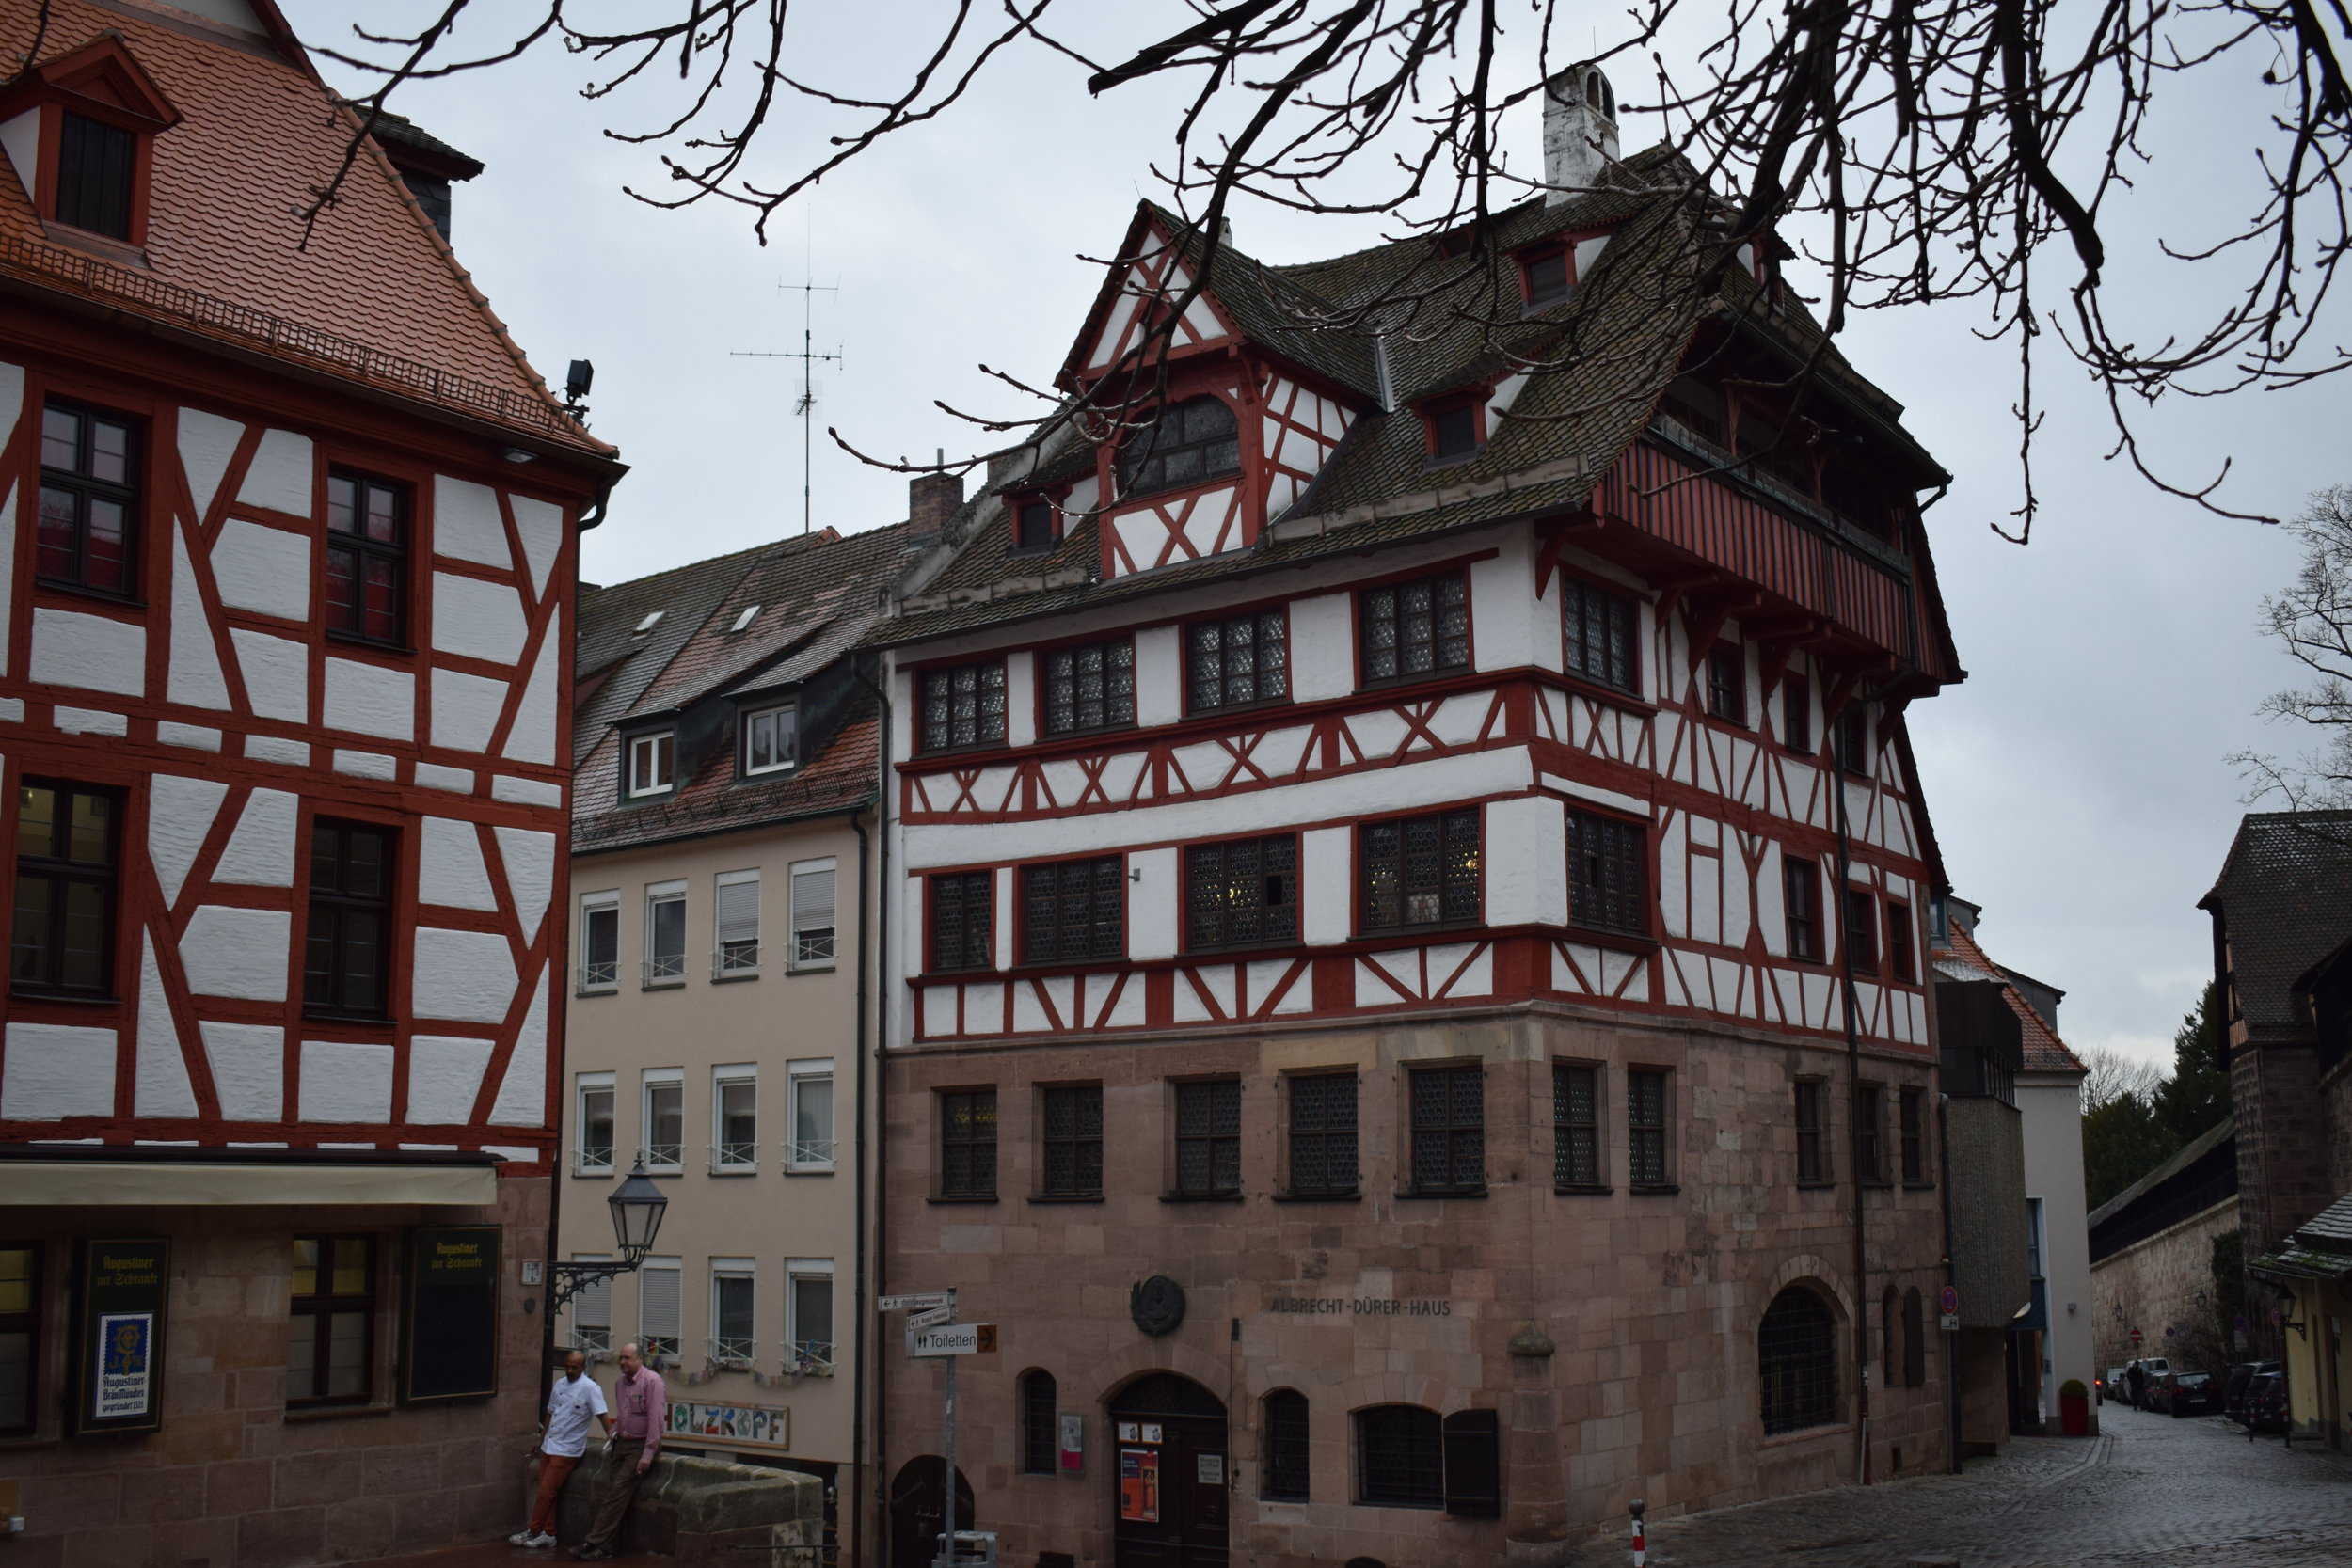 One of Nuremberg's most iconic shots, looking towards the former house of Albrecht Dürer.